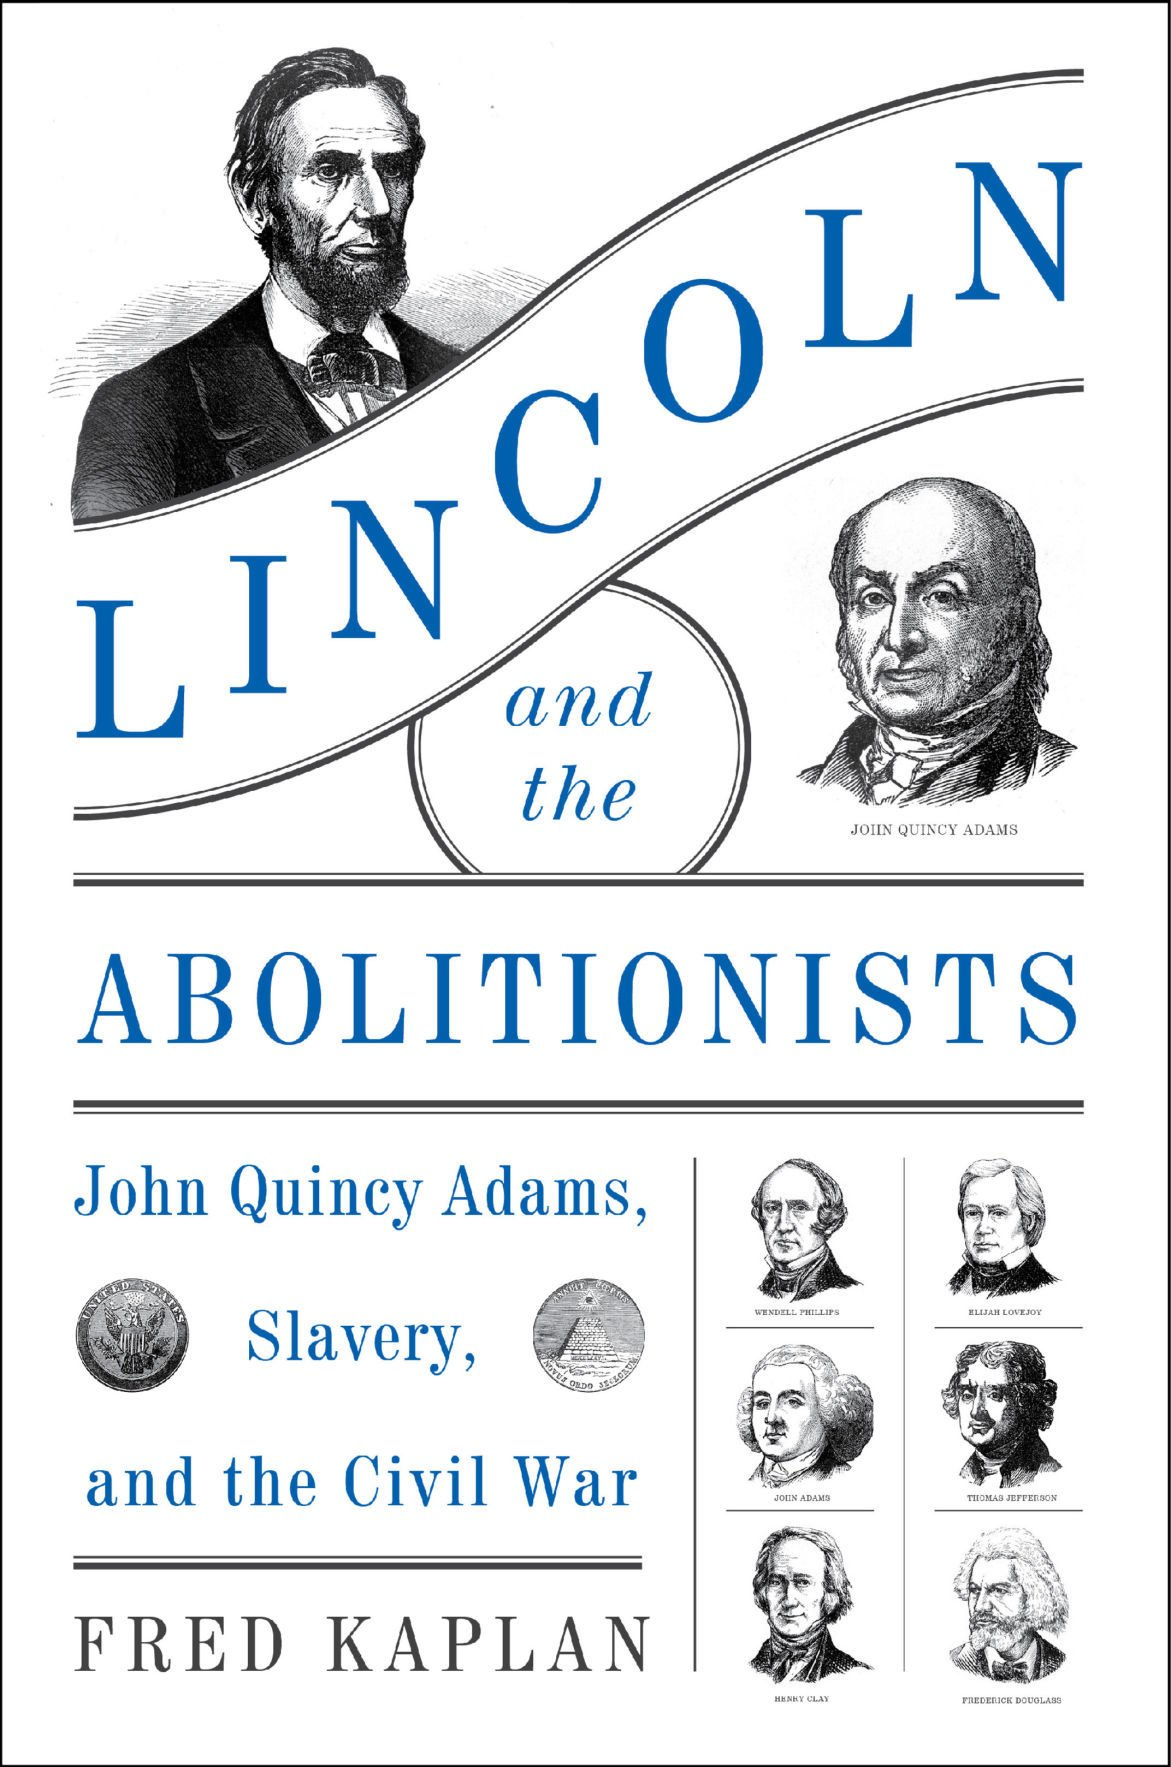 american slavery book review Project 2001: significant works in economic history robert william fogel and stanley l engerman, time on the cross: the economics of american negro slaveryboston: little, brown and company, 1974 xviii + 286 pp.